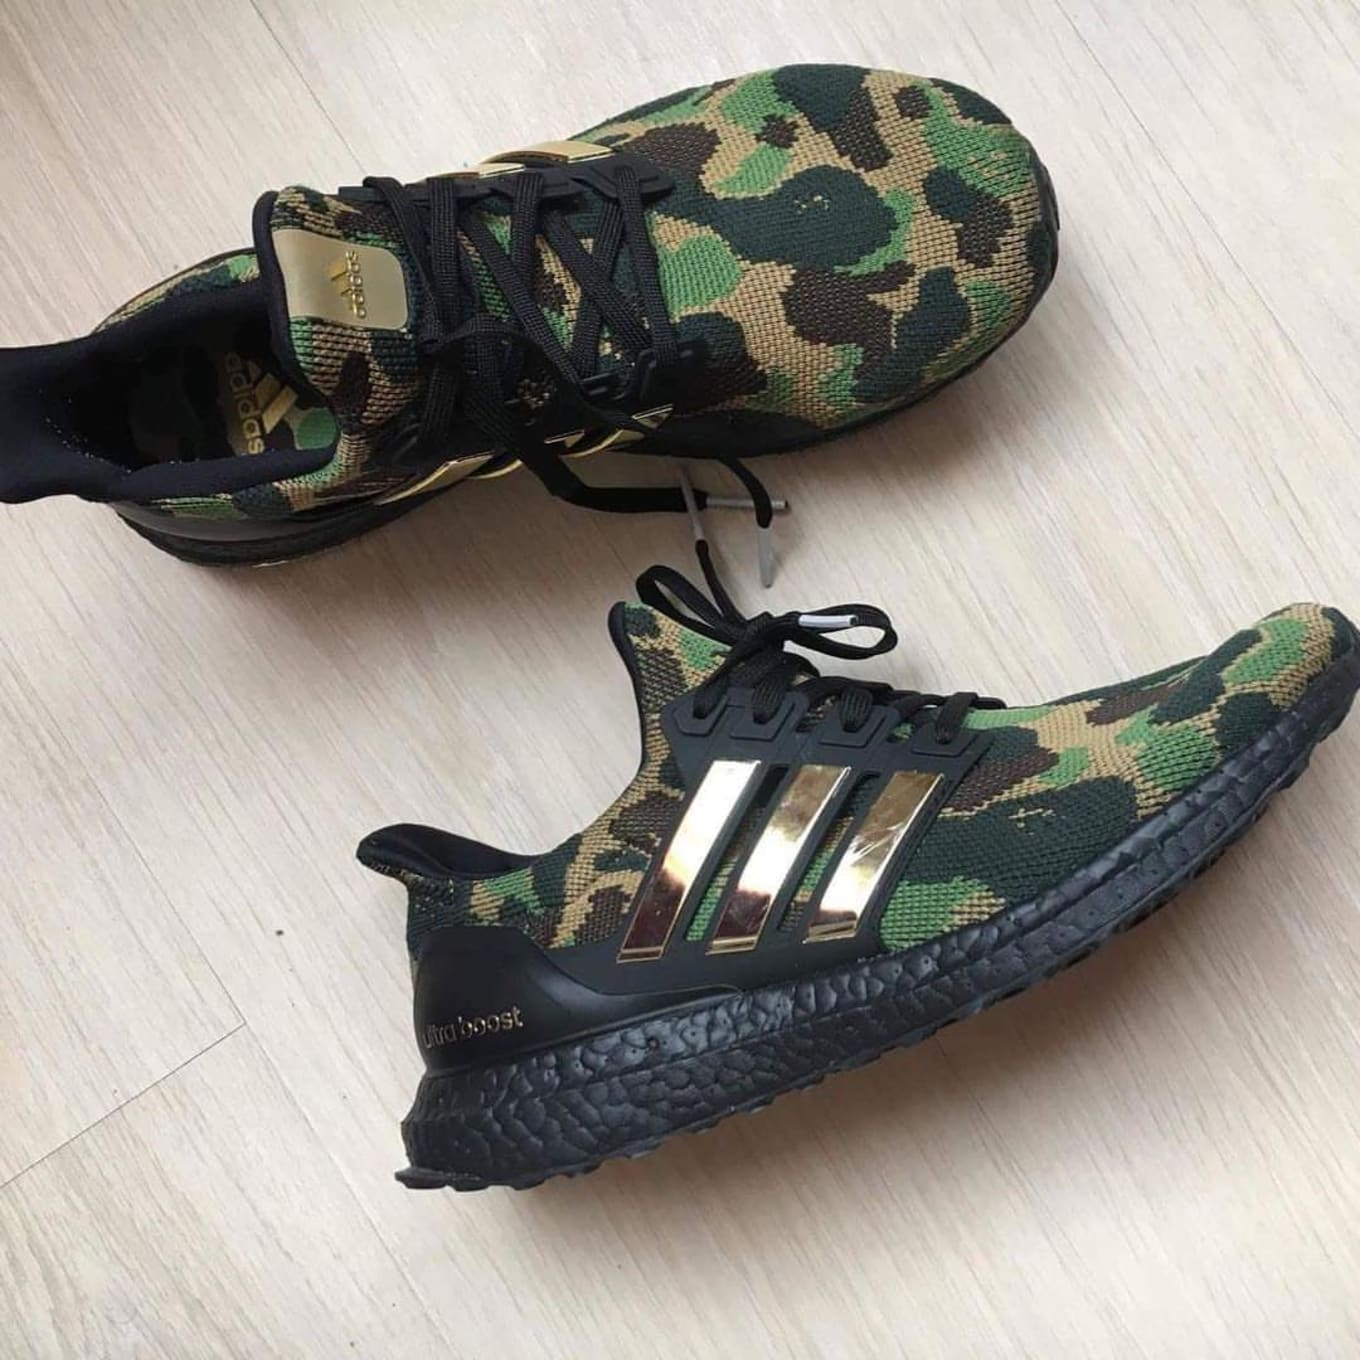 Bape x Adidas Ultra Boost Collaboration Release Date | Sole